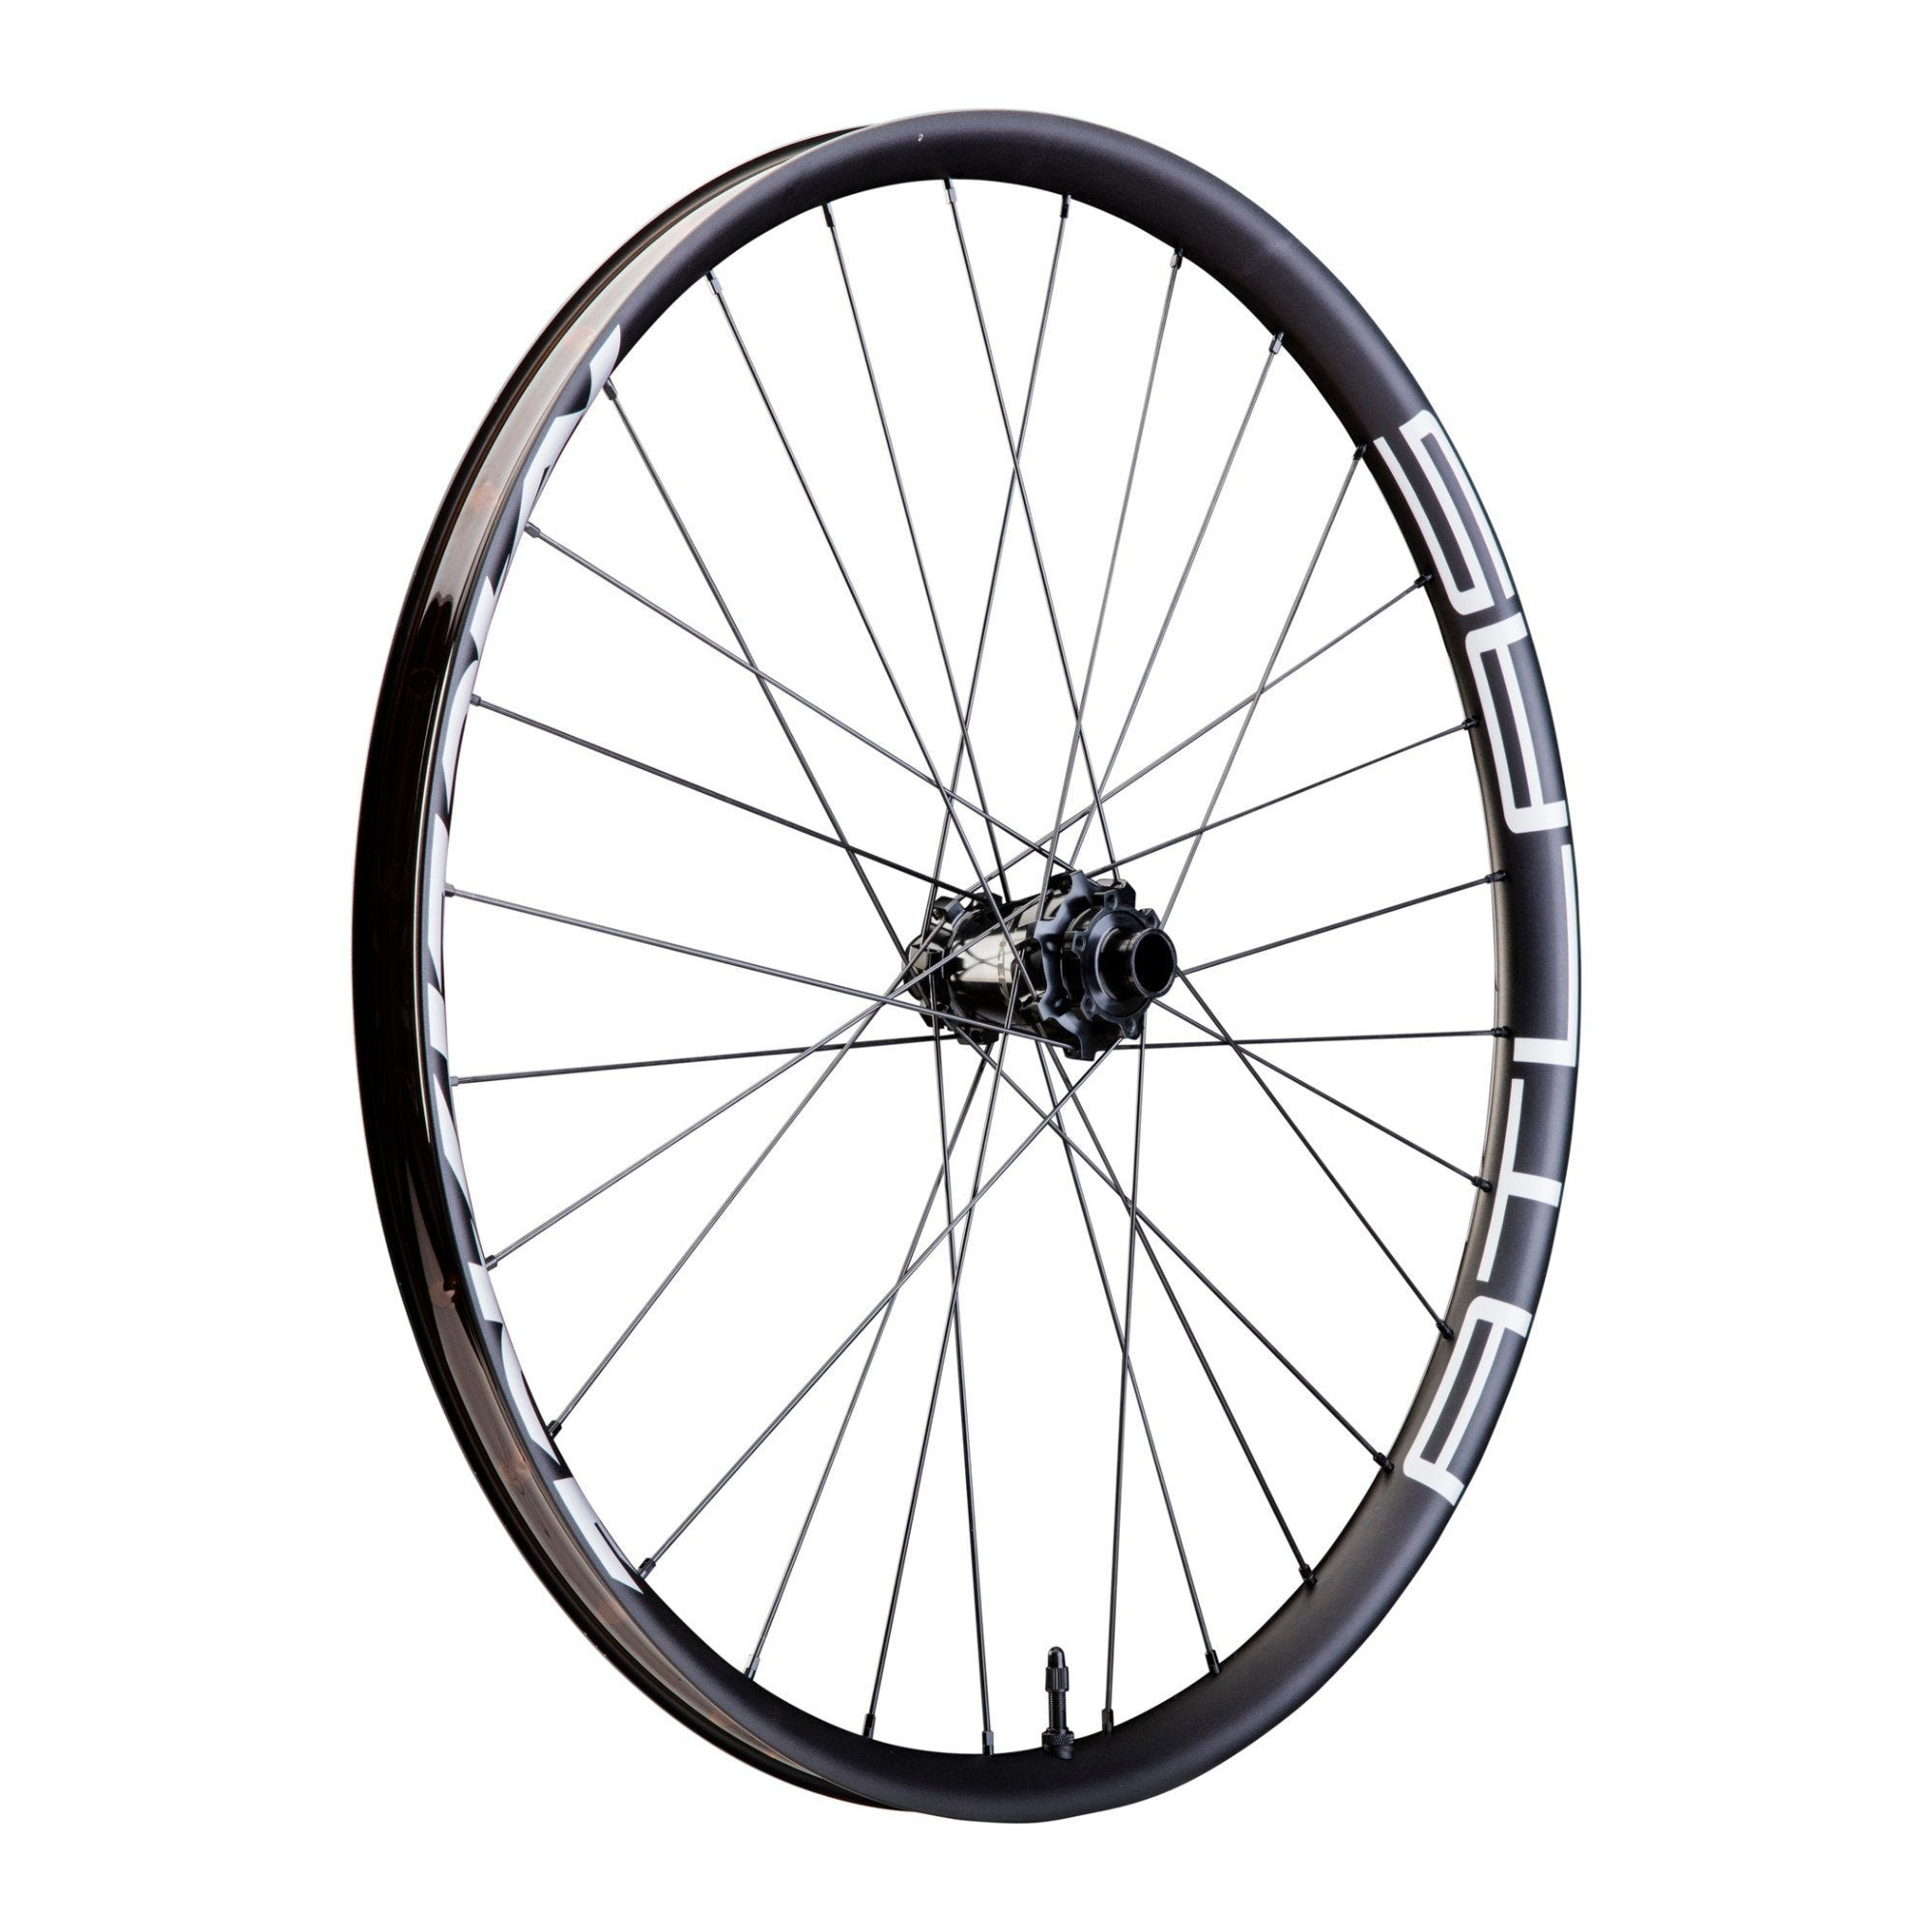 Race Face Components > Factory Wheels Race Face Atlas 30mm Wheel Front